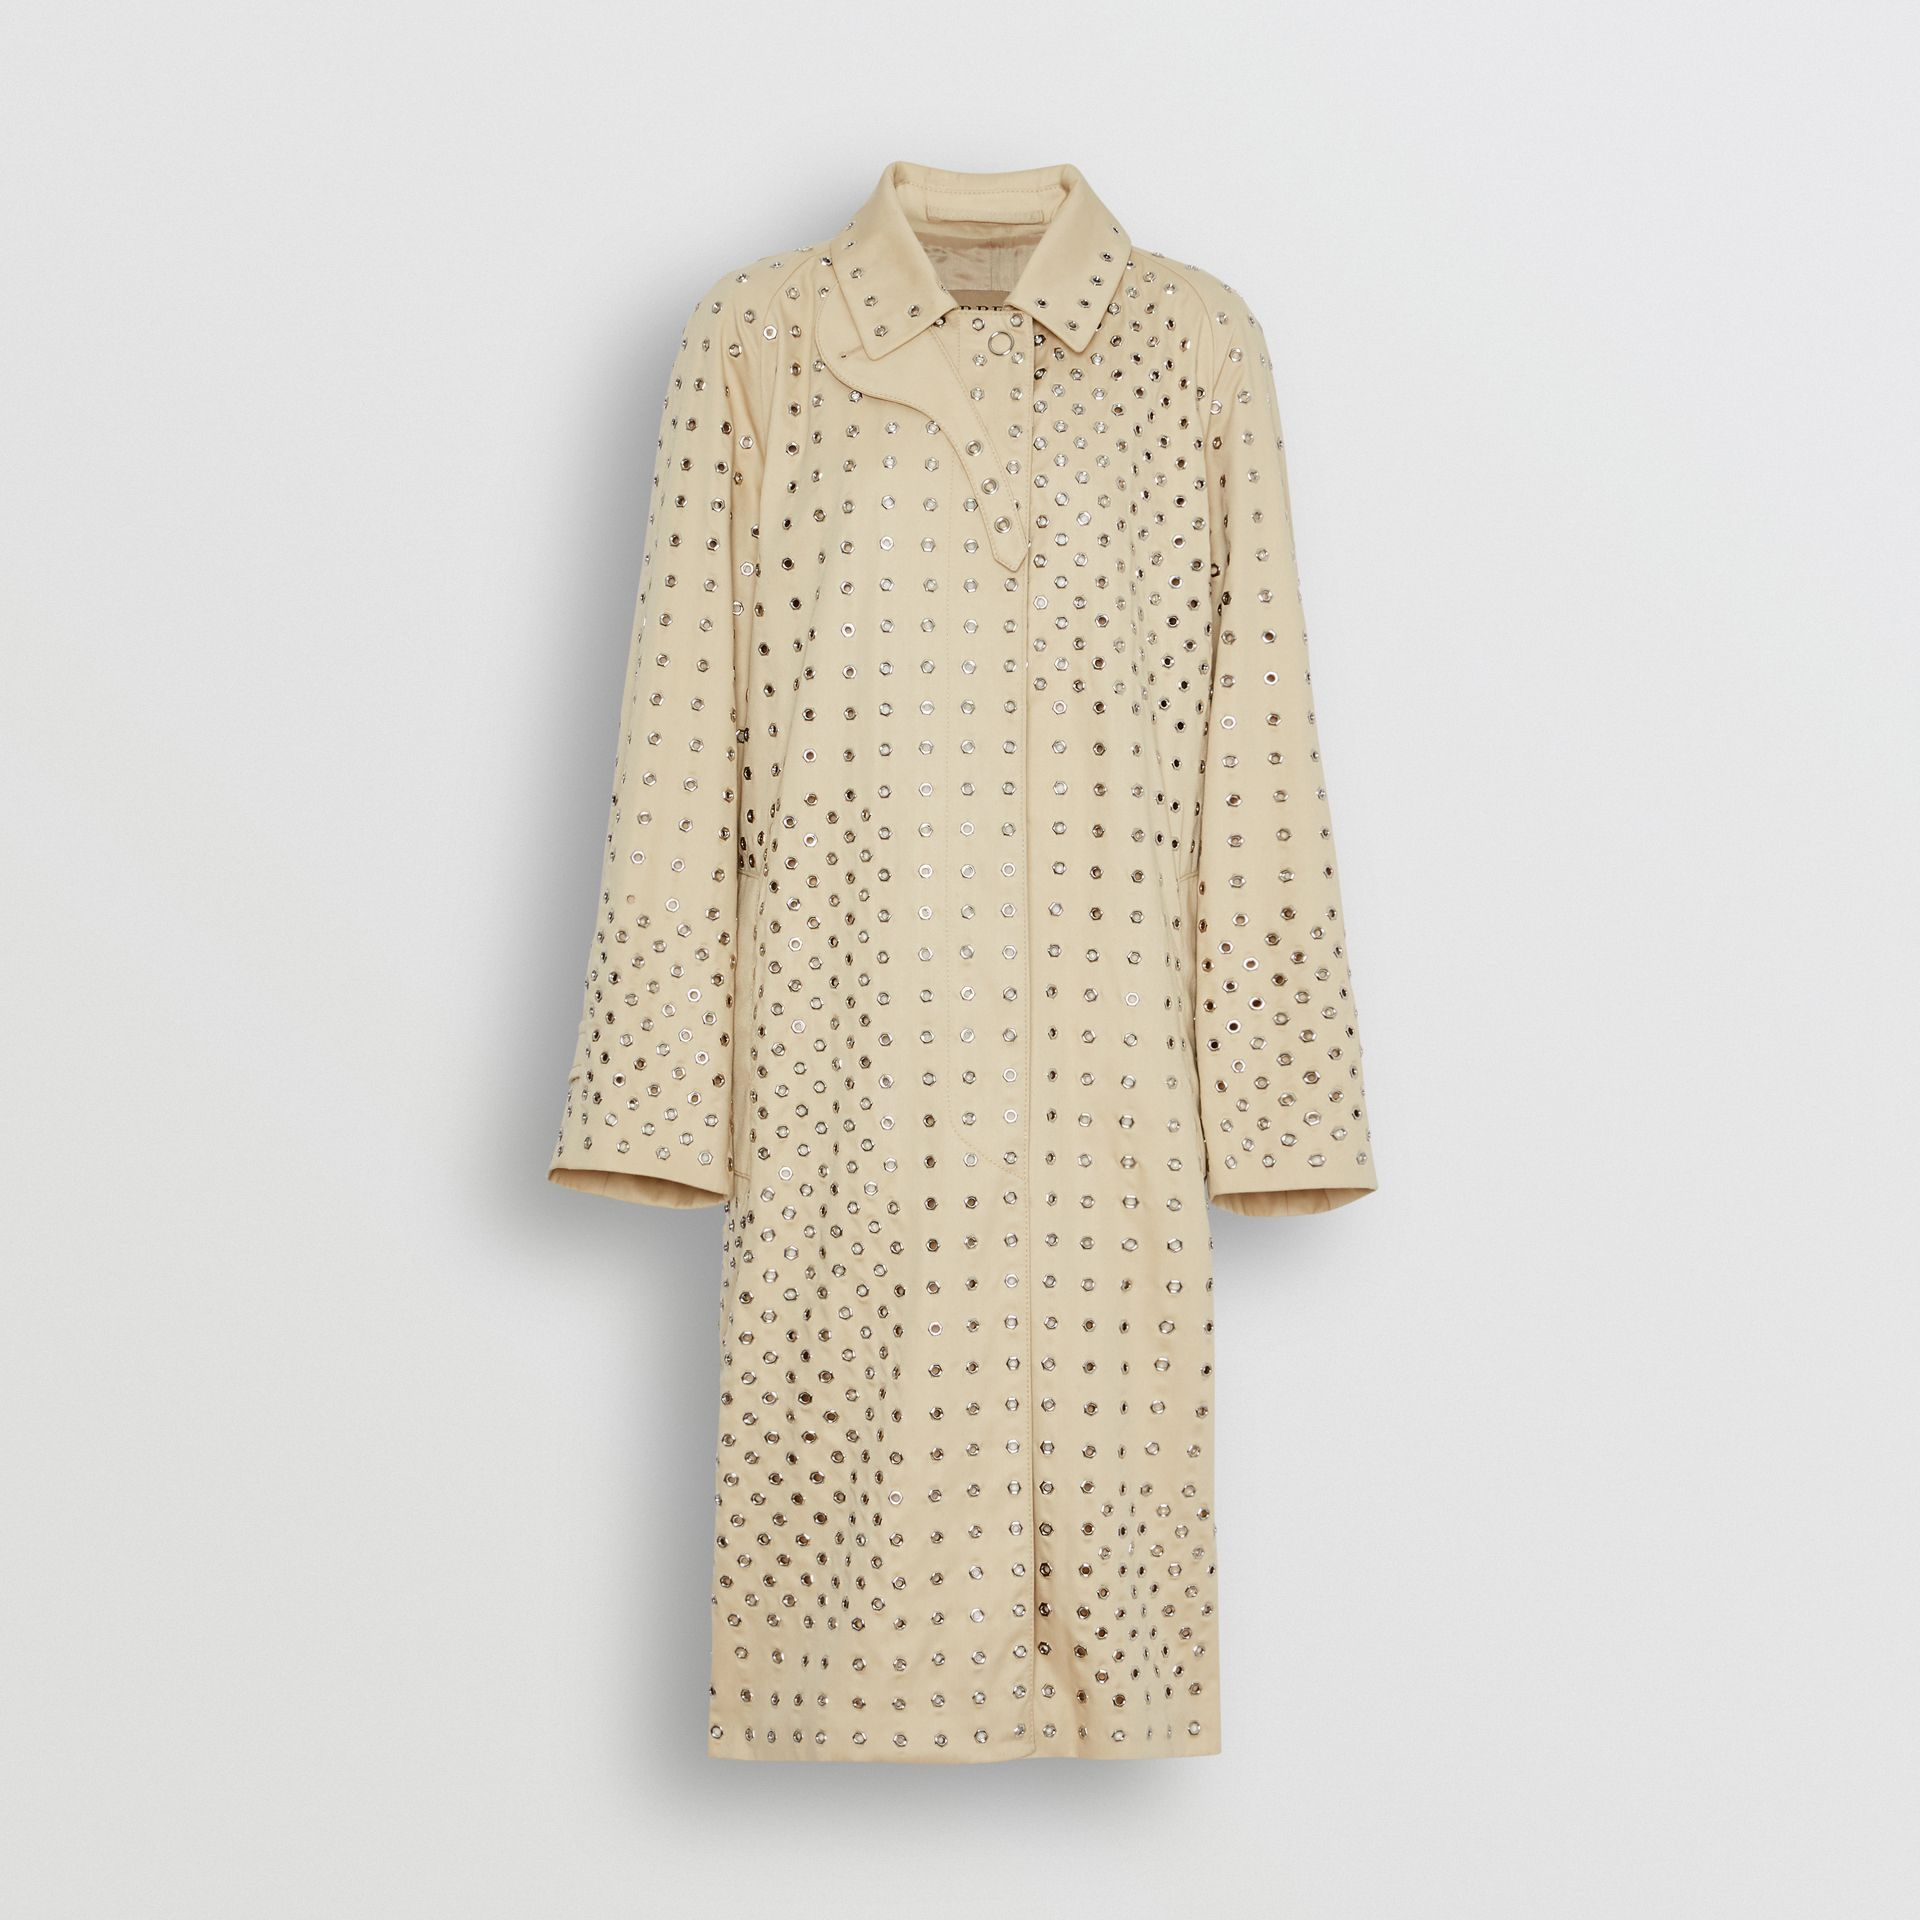 Eyelet Detail Cotton Car Coat in Light Beige - Women | Burberry Canada - gallery image 3